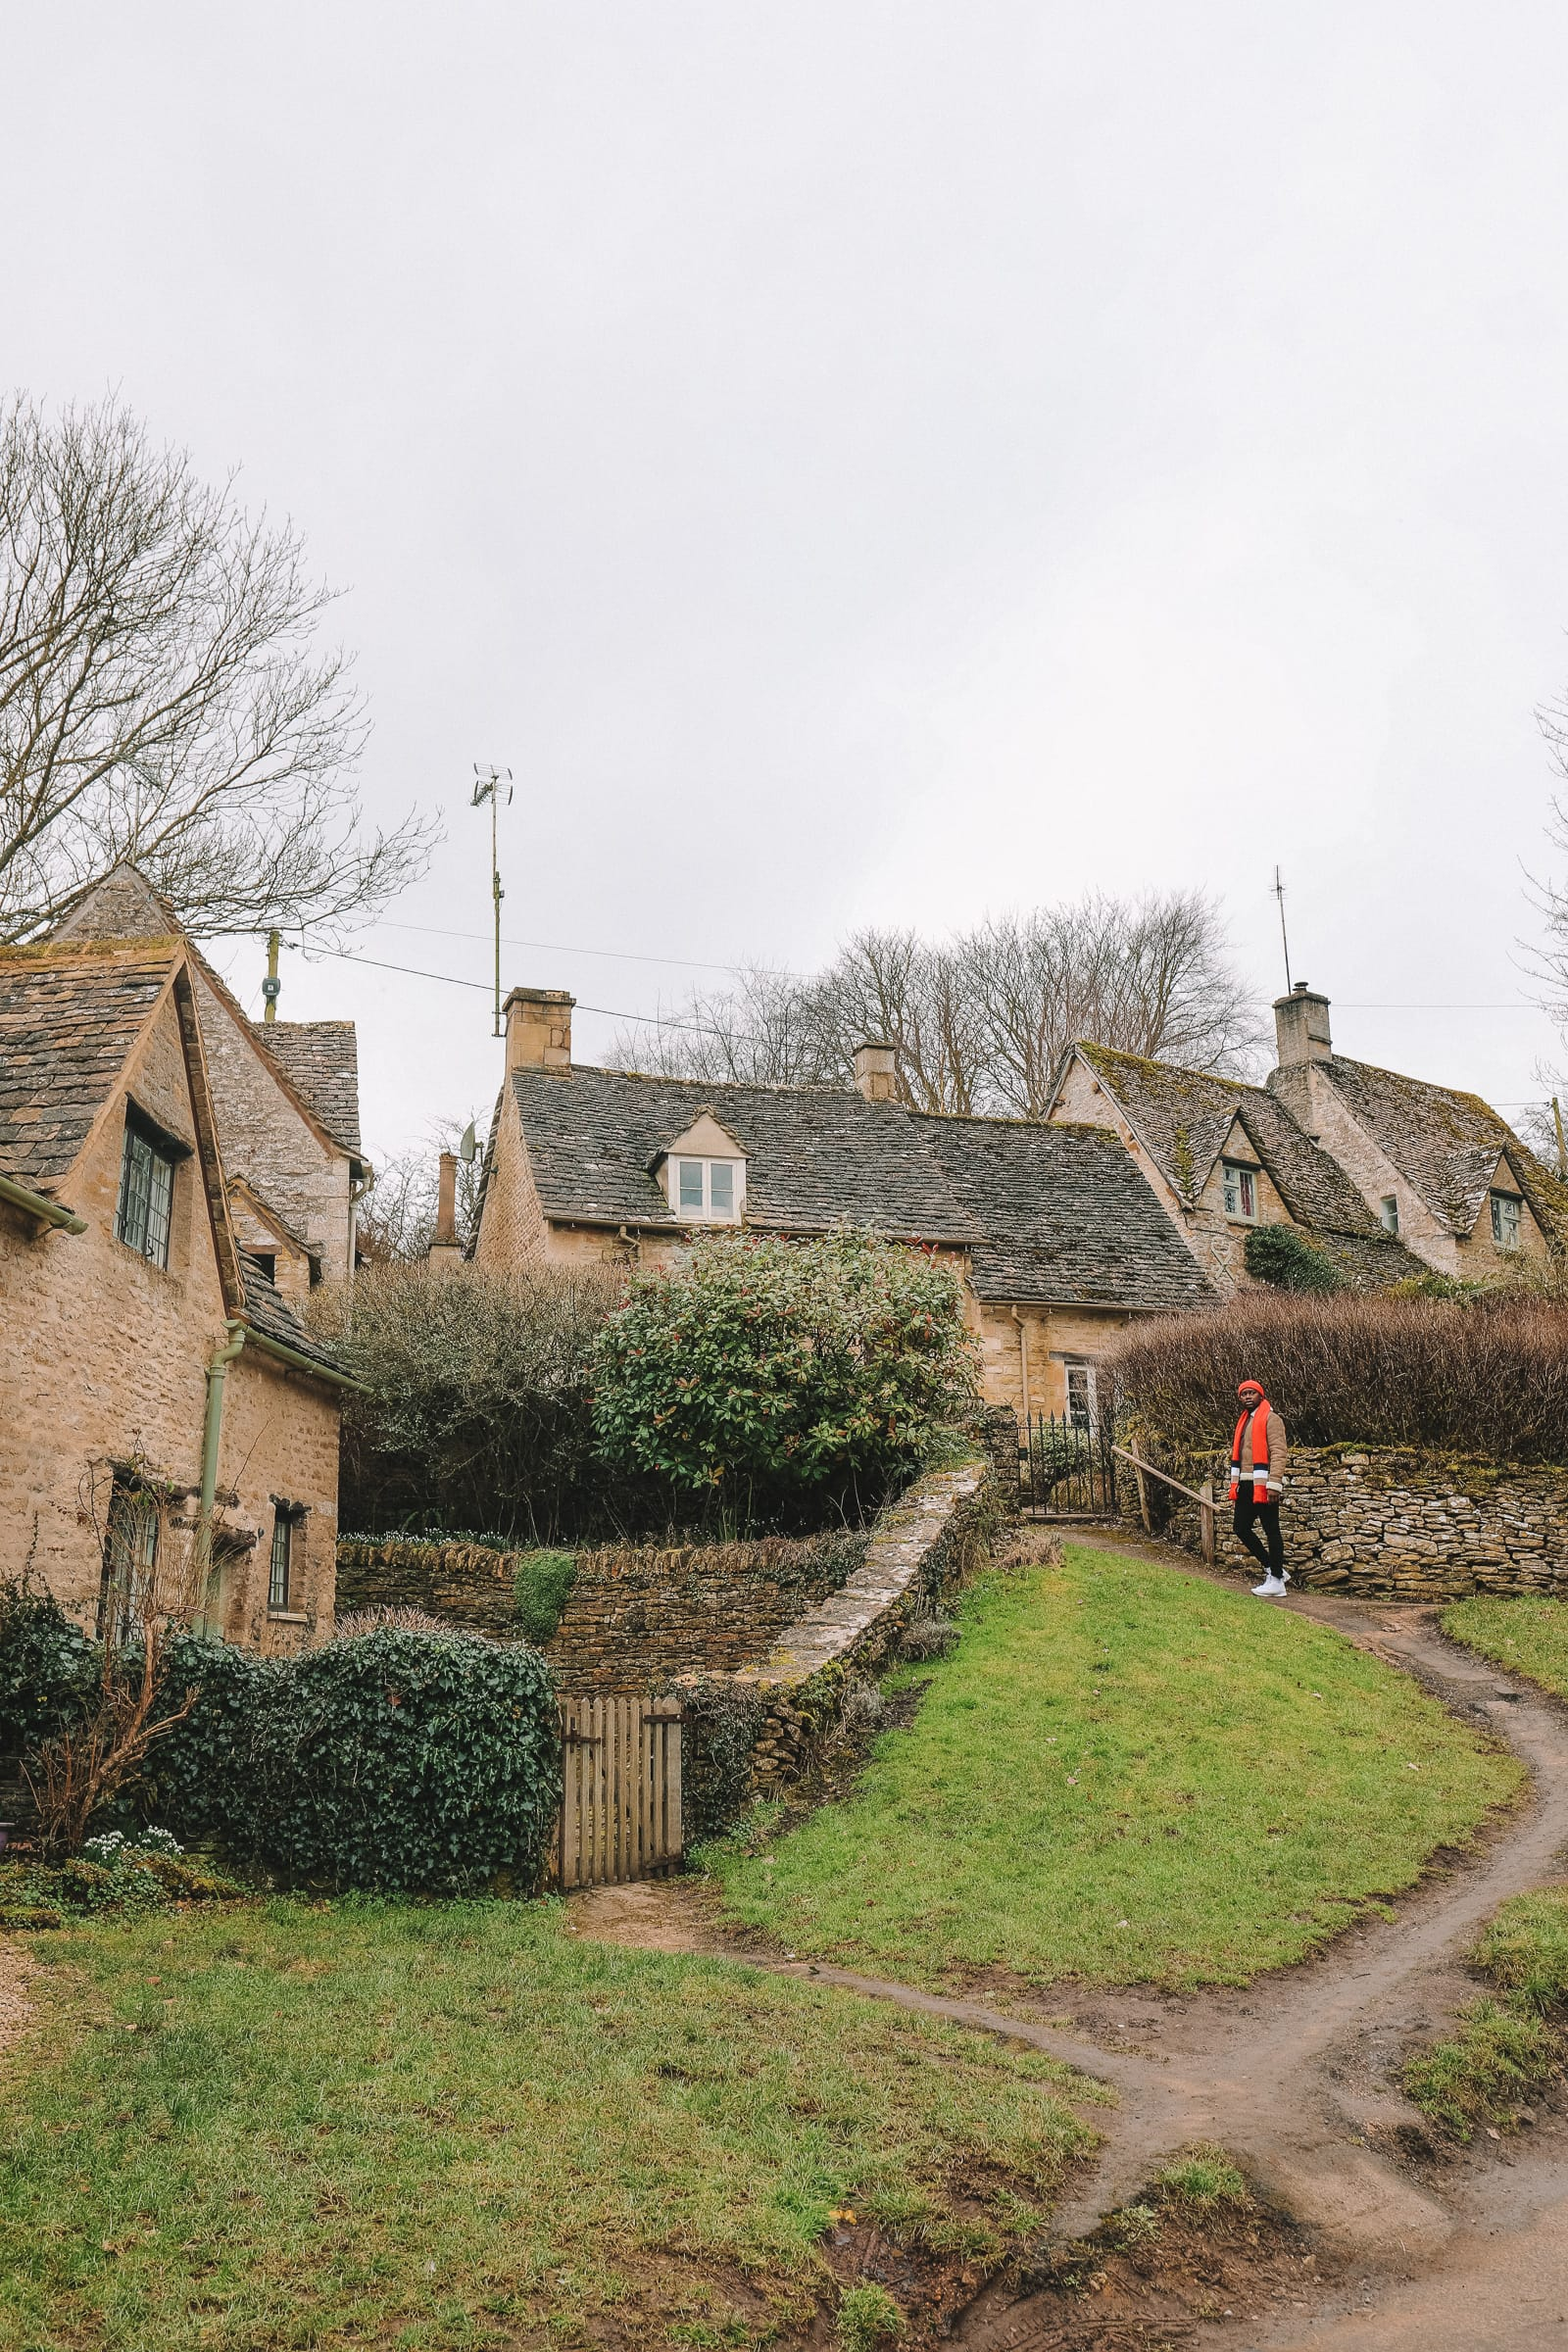 4 Villages And Towns You Have To Visit In The Cotswolds, England (8)